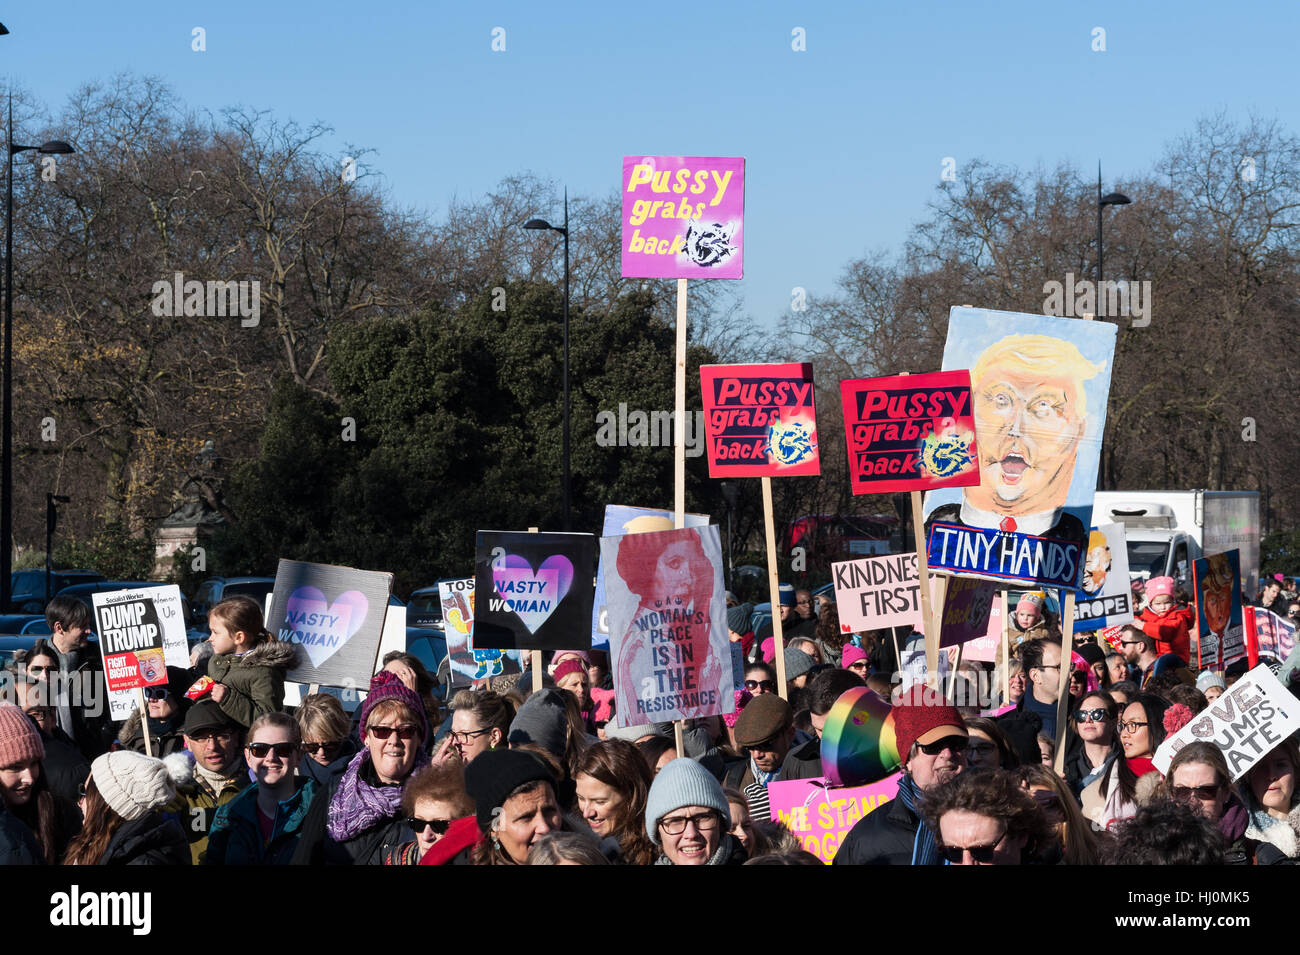 London, UK. 21st January 2017. Around 100,000 people attended 'Women's March on London' as part of a - Stock Image